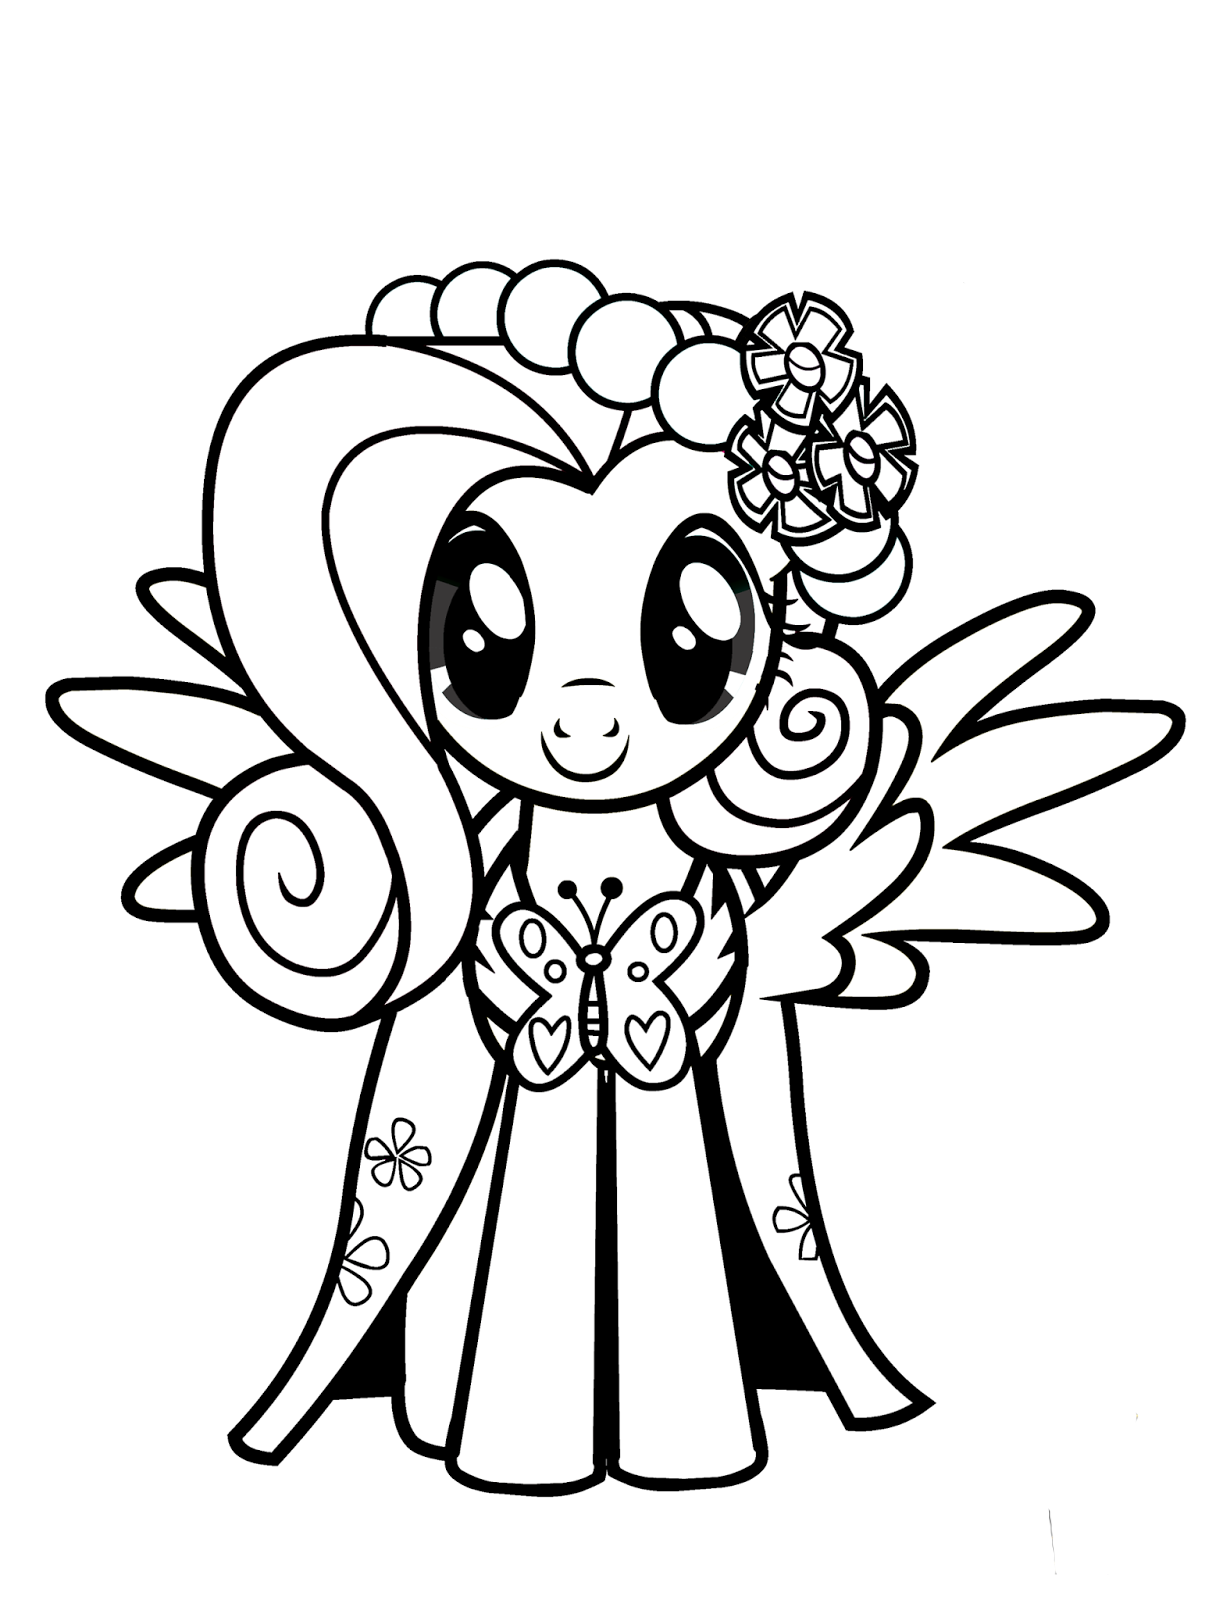 Fluttershy coloring pages best coloring pages for kids for Coloring pages t